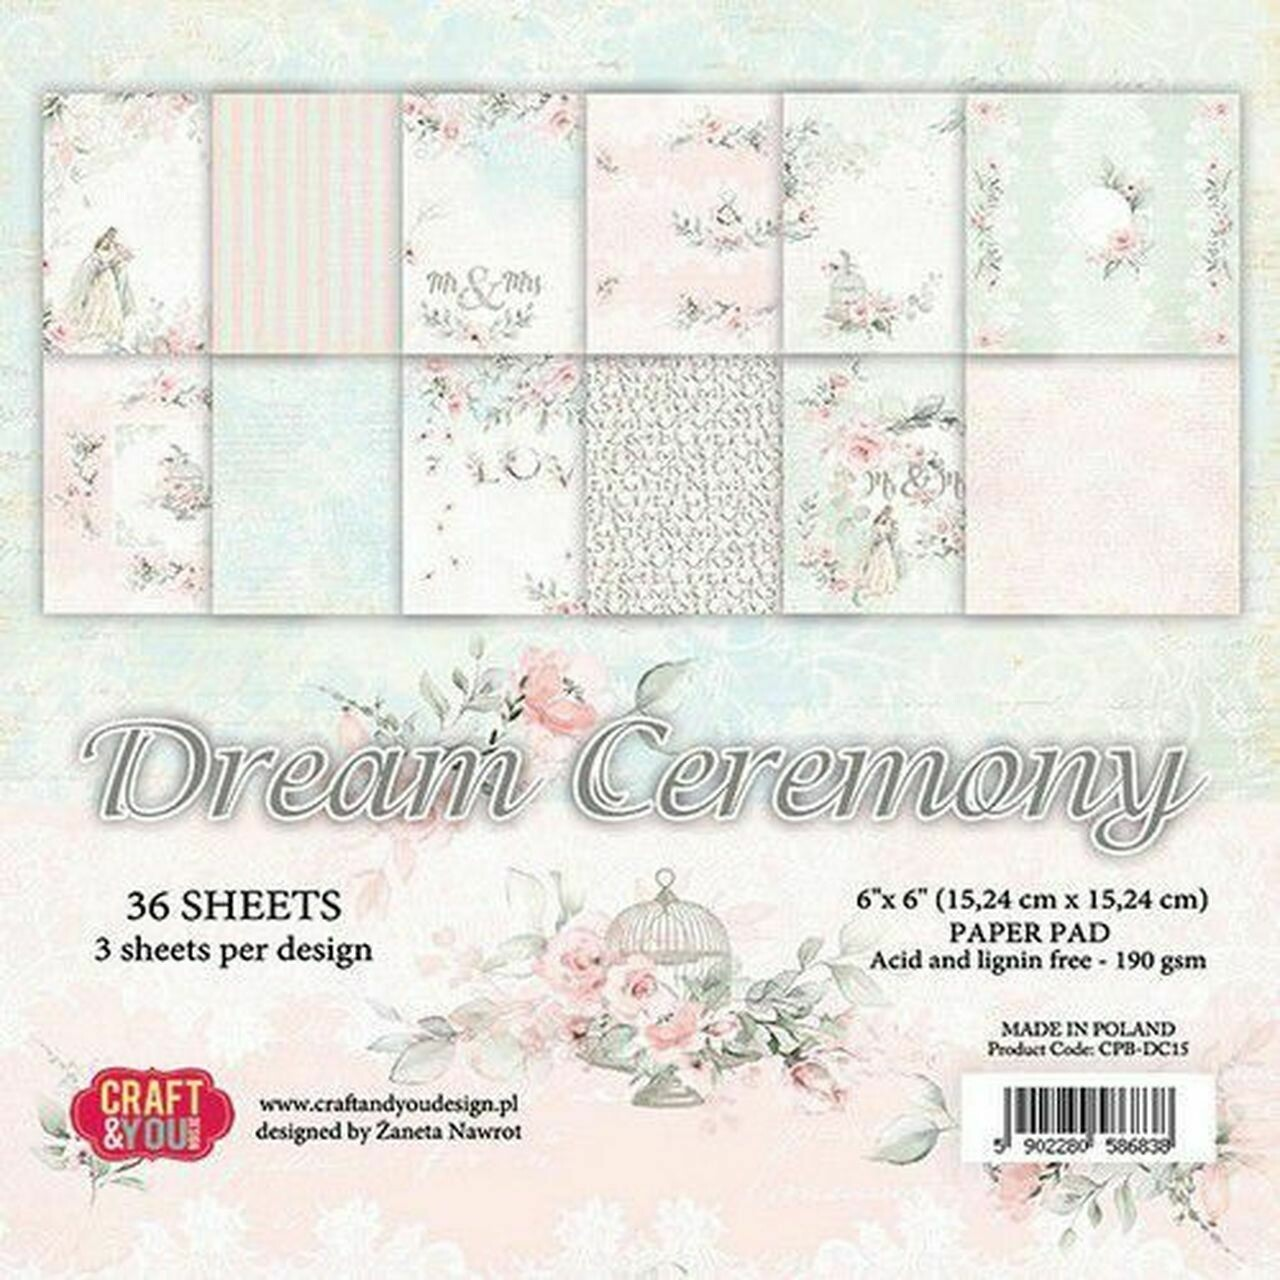 Dream Ceremony 6x6 paper pack